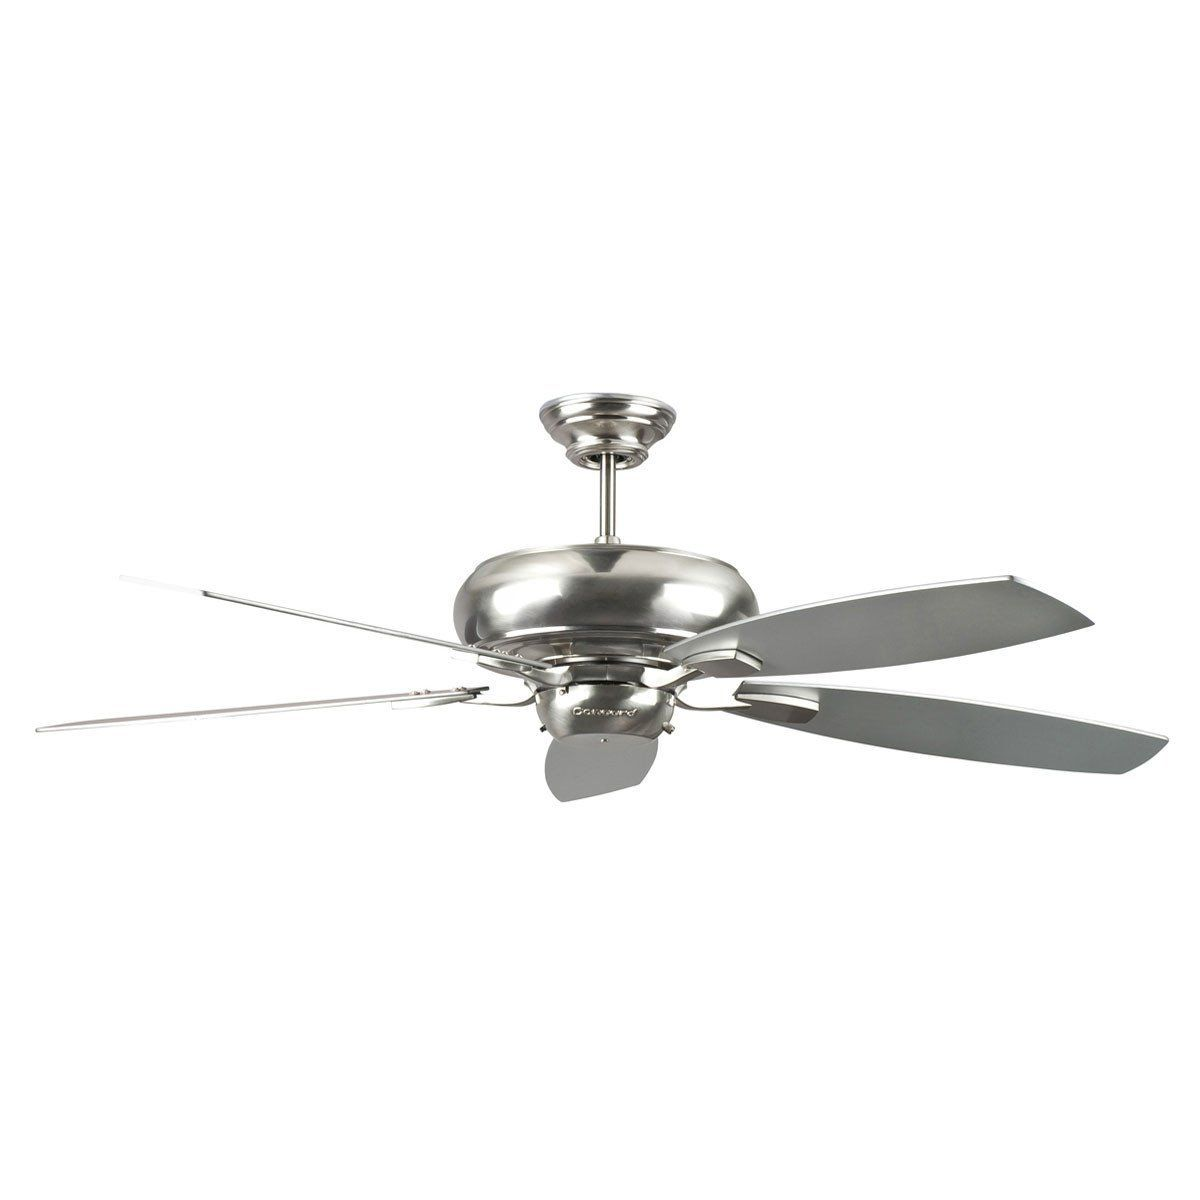 Concord Fans Contemporary 60 Roosevelt Stainless Steel Large Ceiling Fan Stainless Steel Ceiling Fan Large Ceiling Fans Ceiling Fan